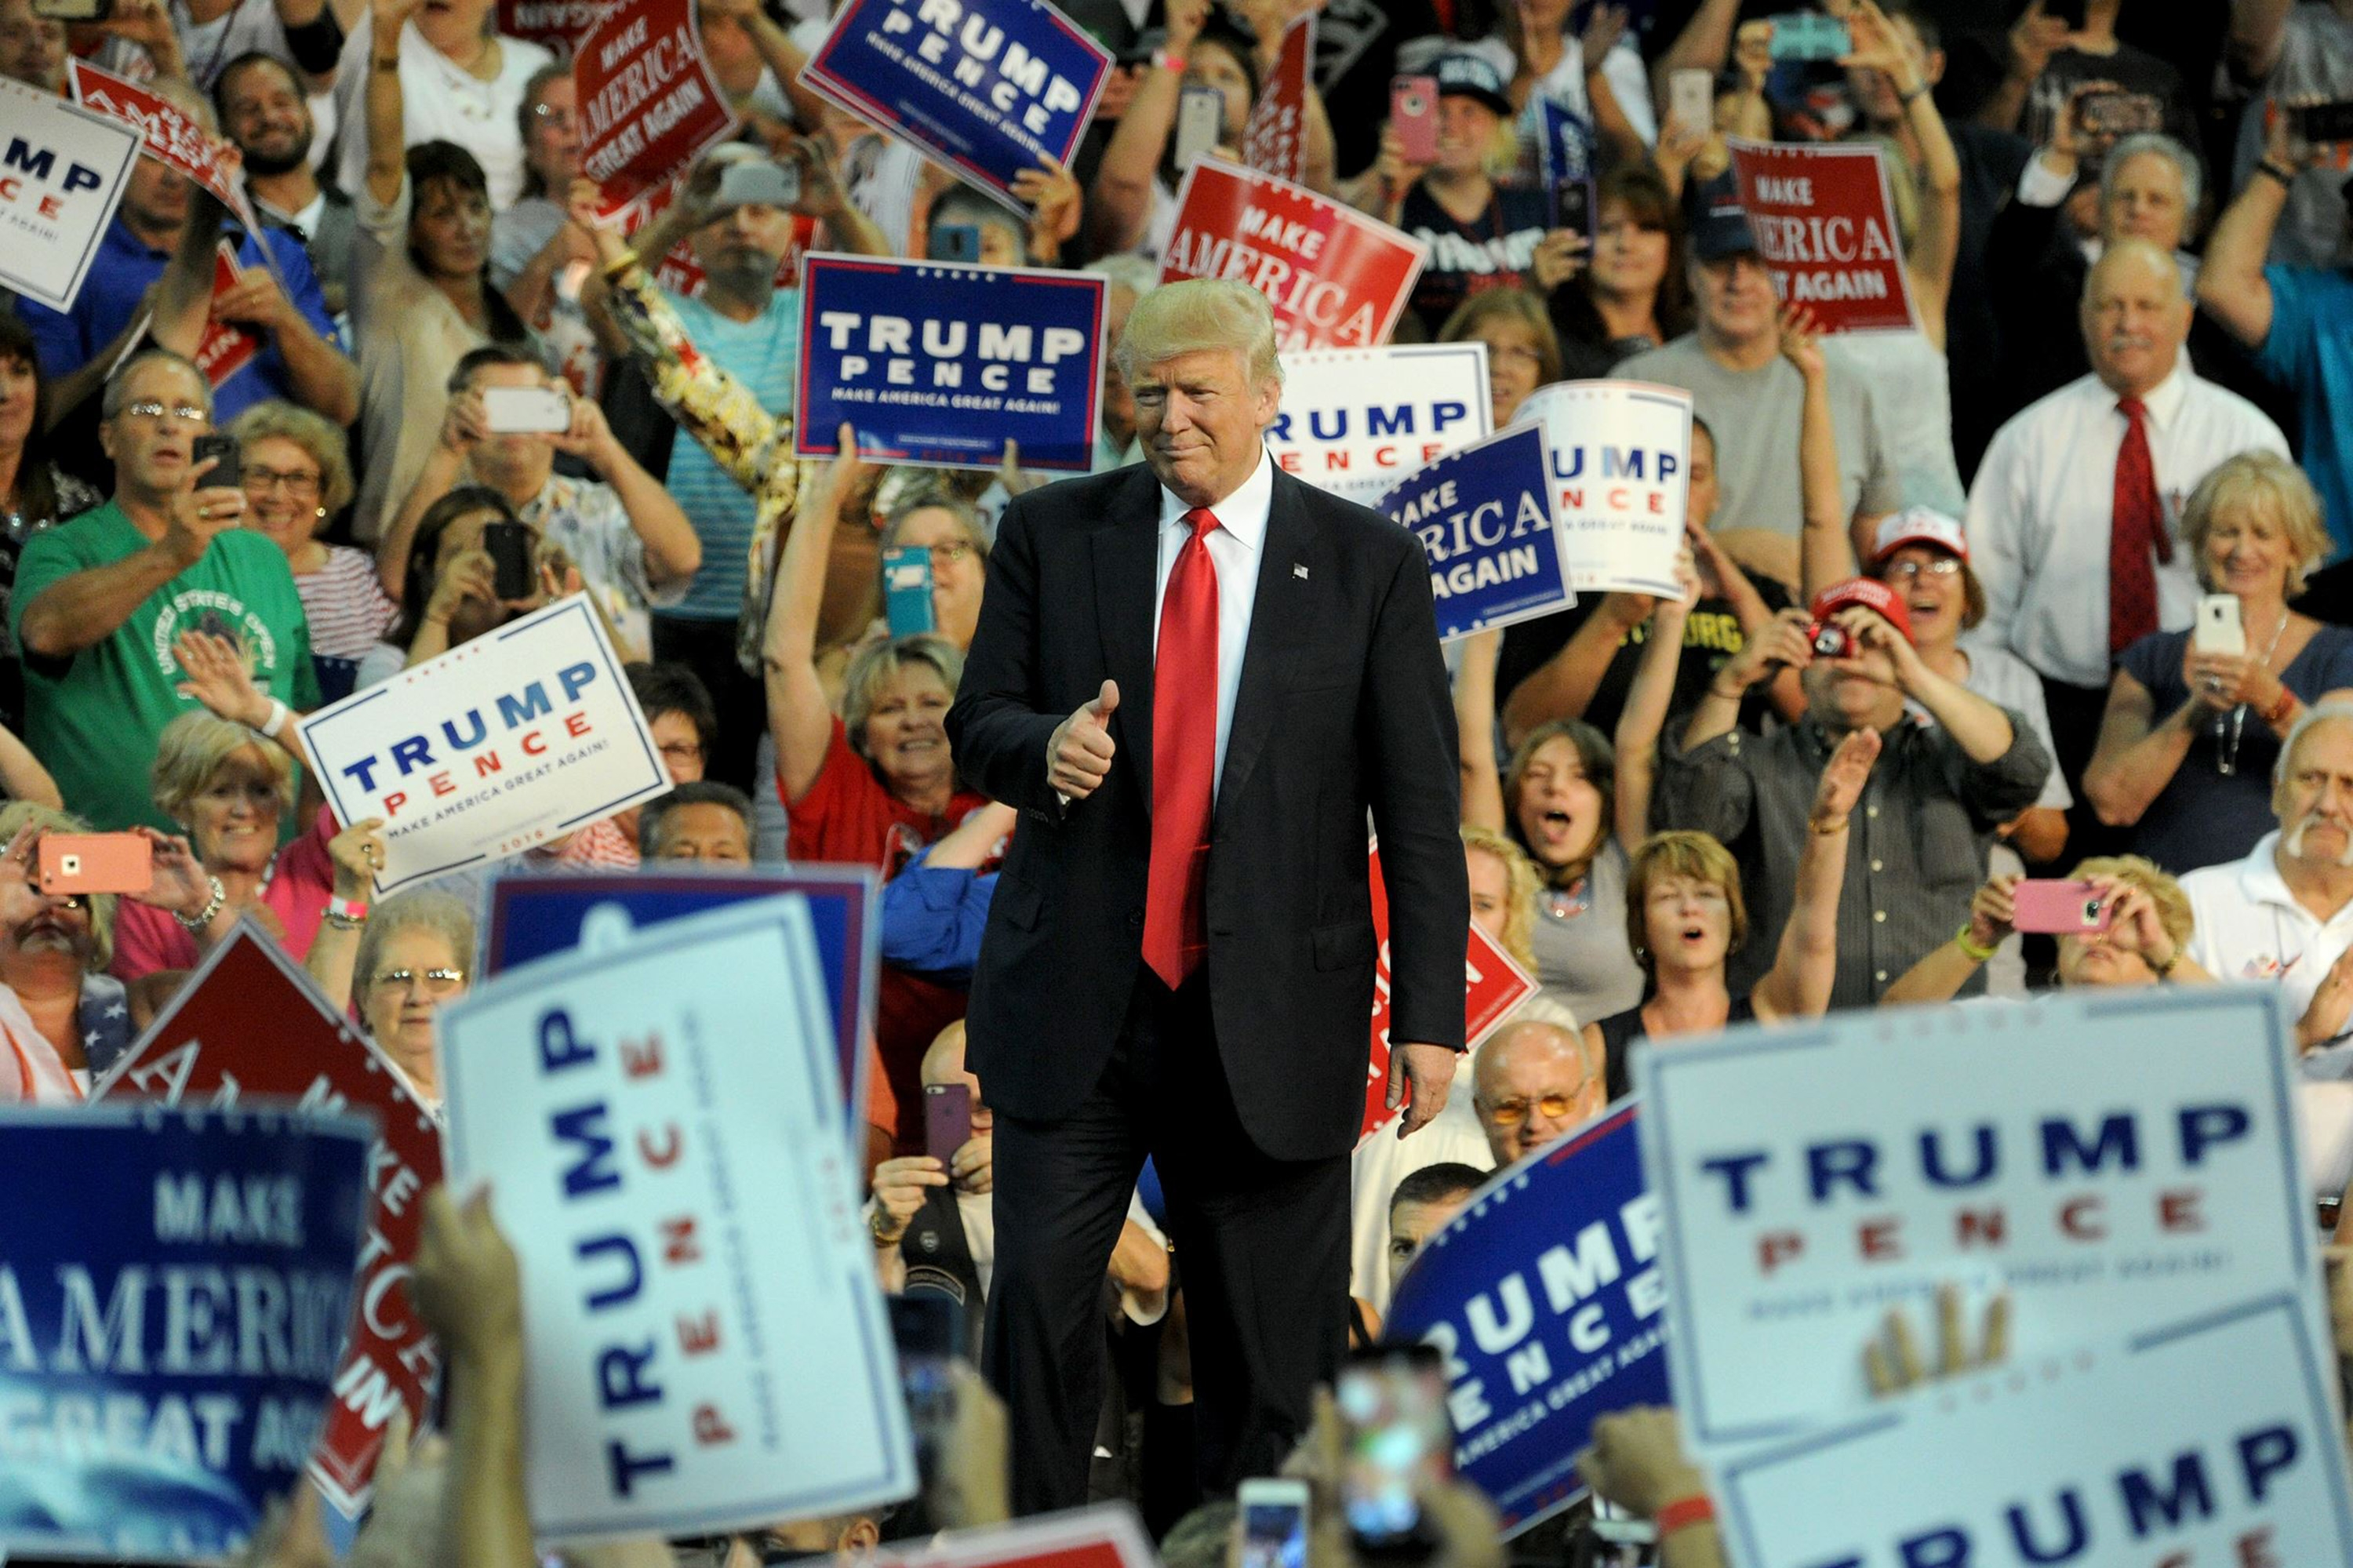 Republican presidential candidate Donald Trump acknowledges supporters while taking the stage during a campaign rally at Erie Insurance Arena in Erie, Pa., on Friday.